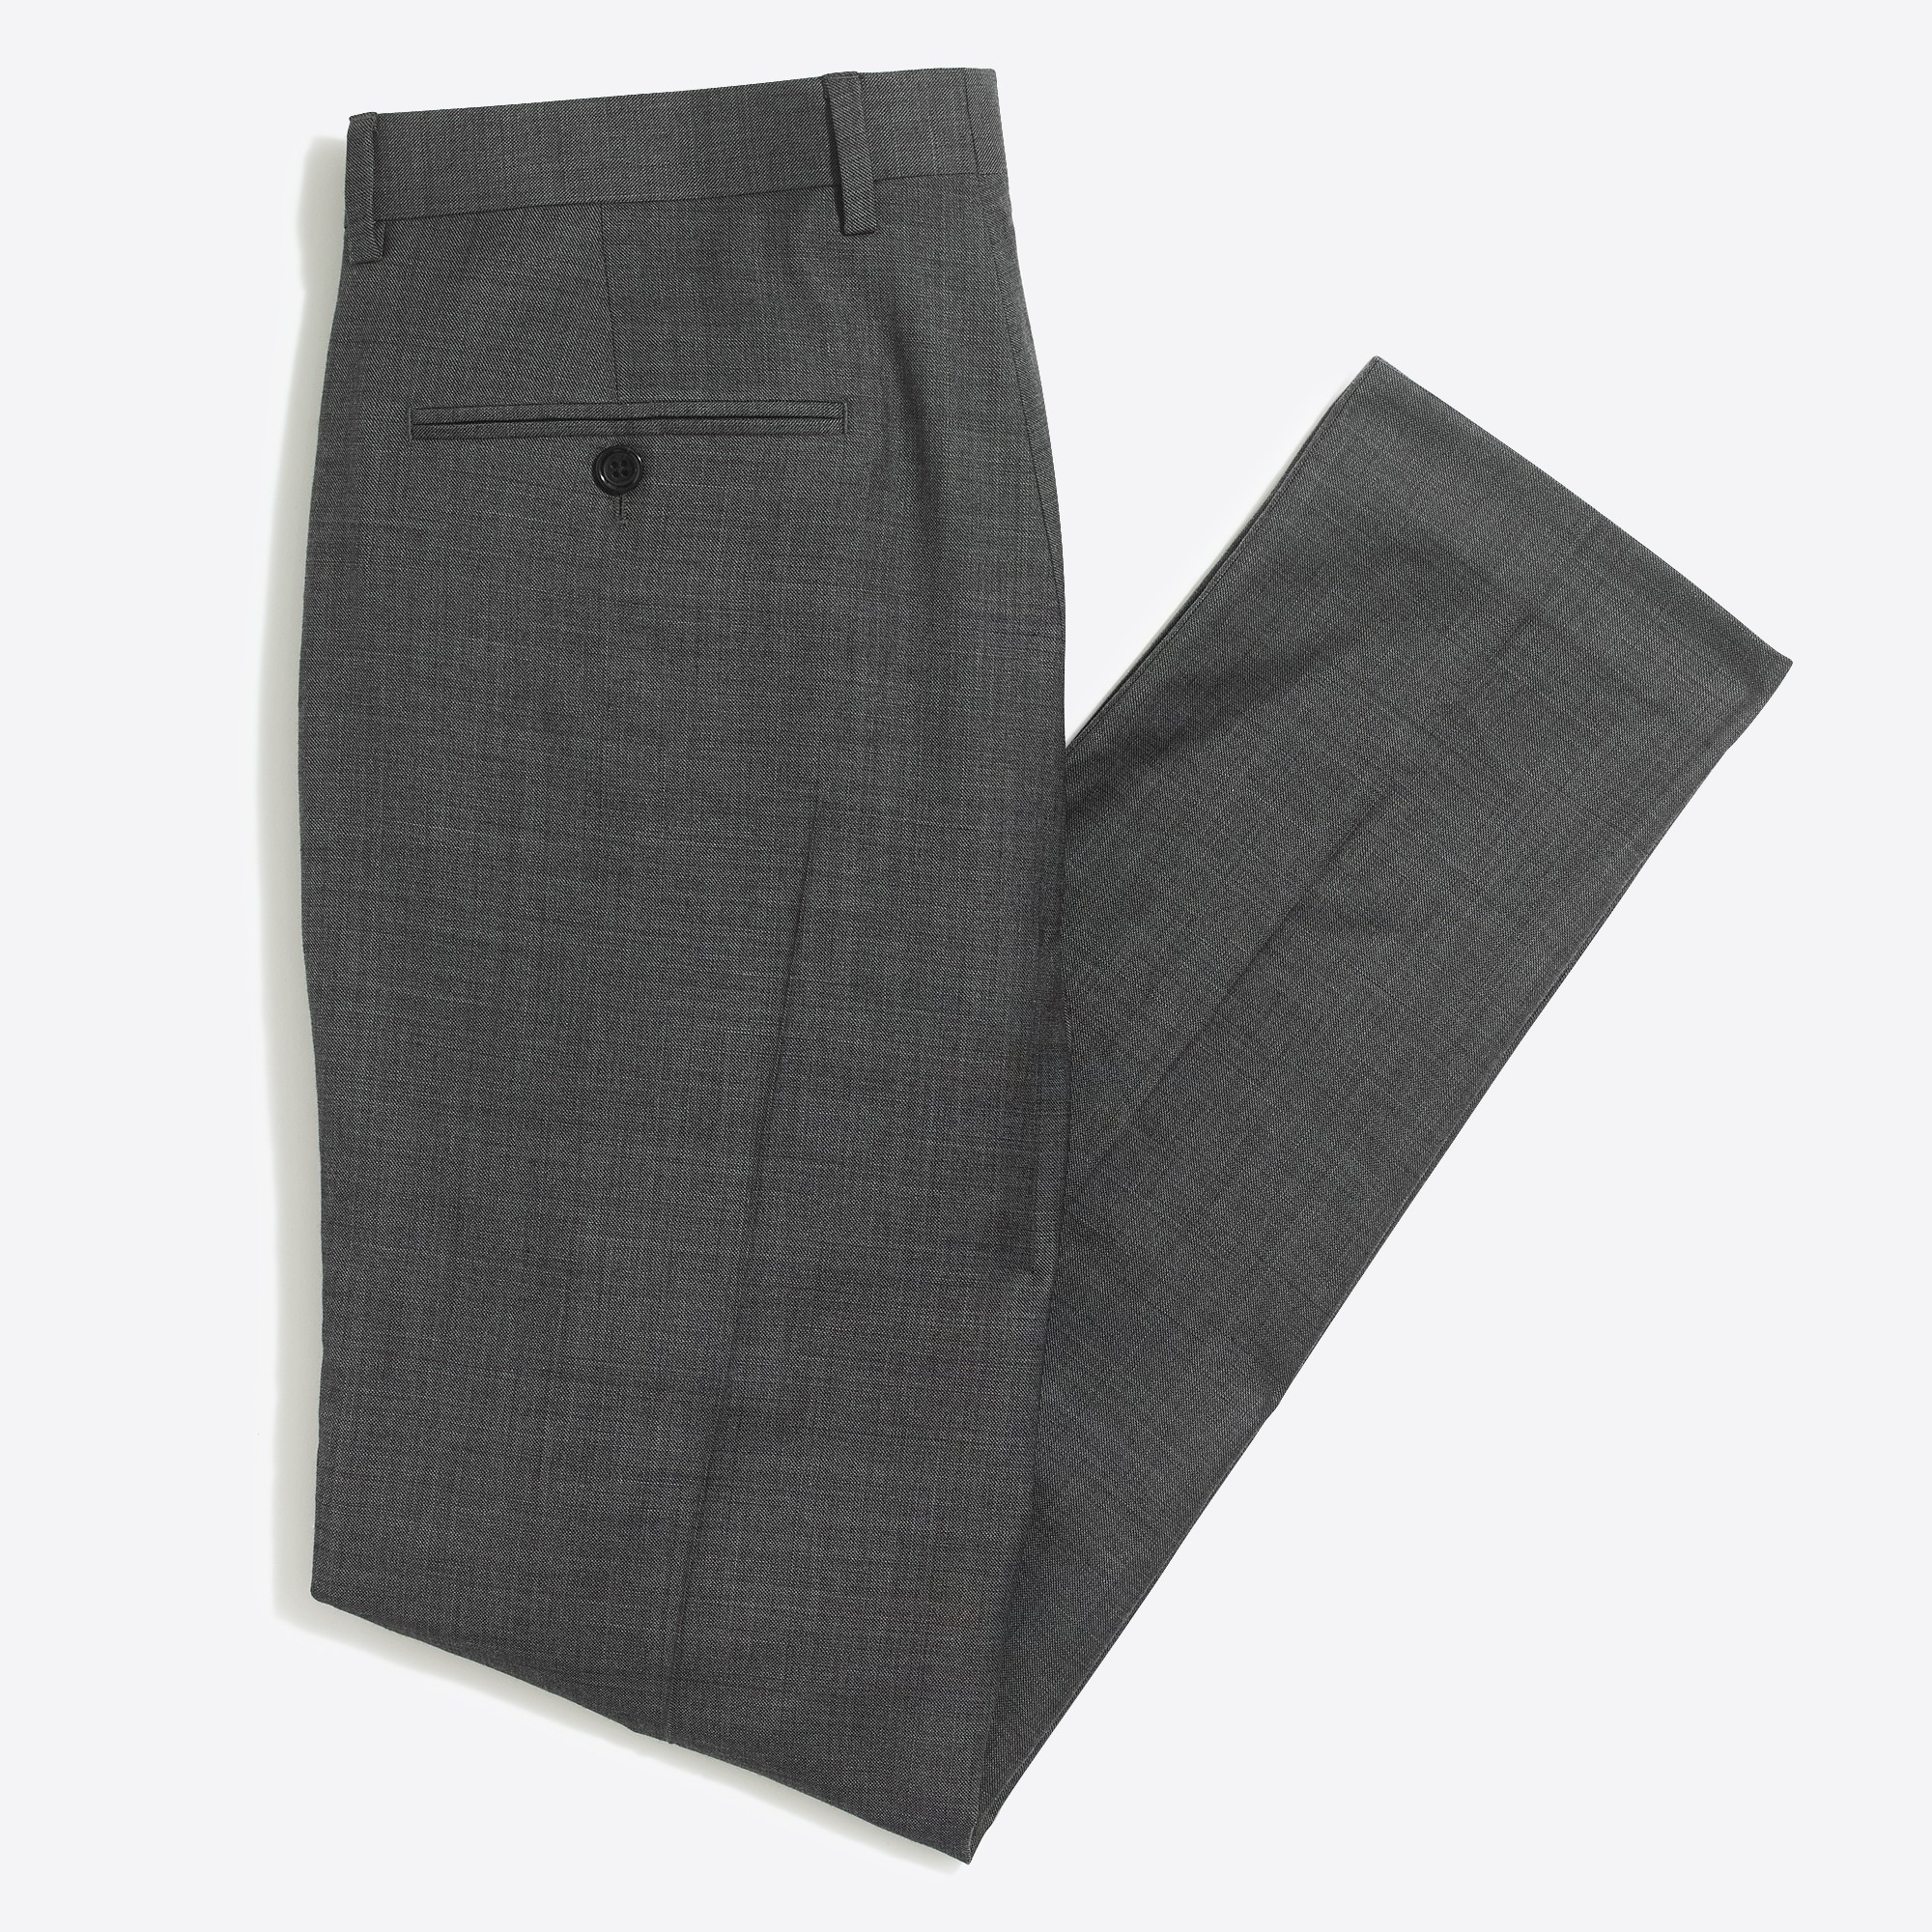 Image 3 for Classic-fit Thompson suit pant in worsted wool